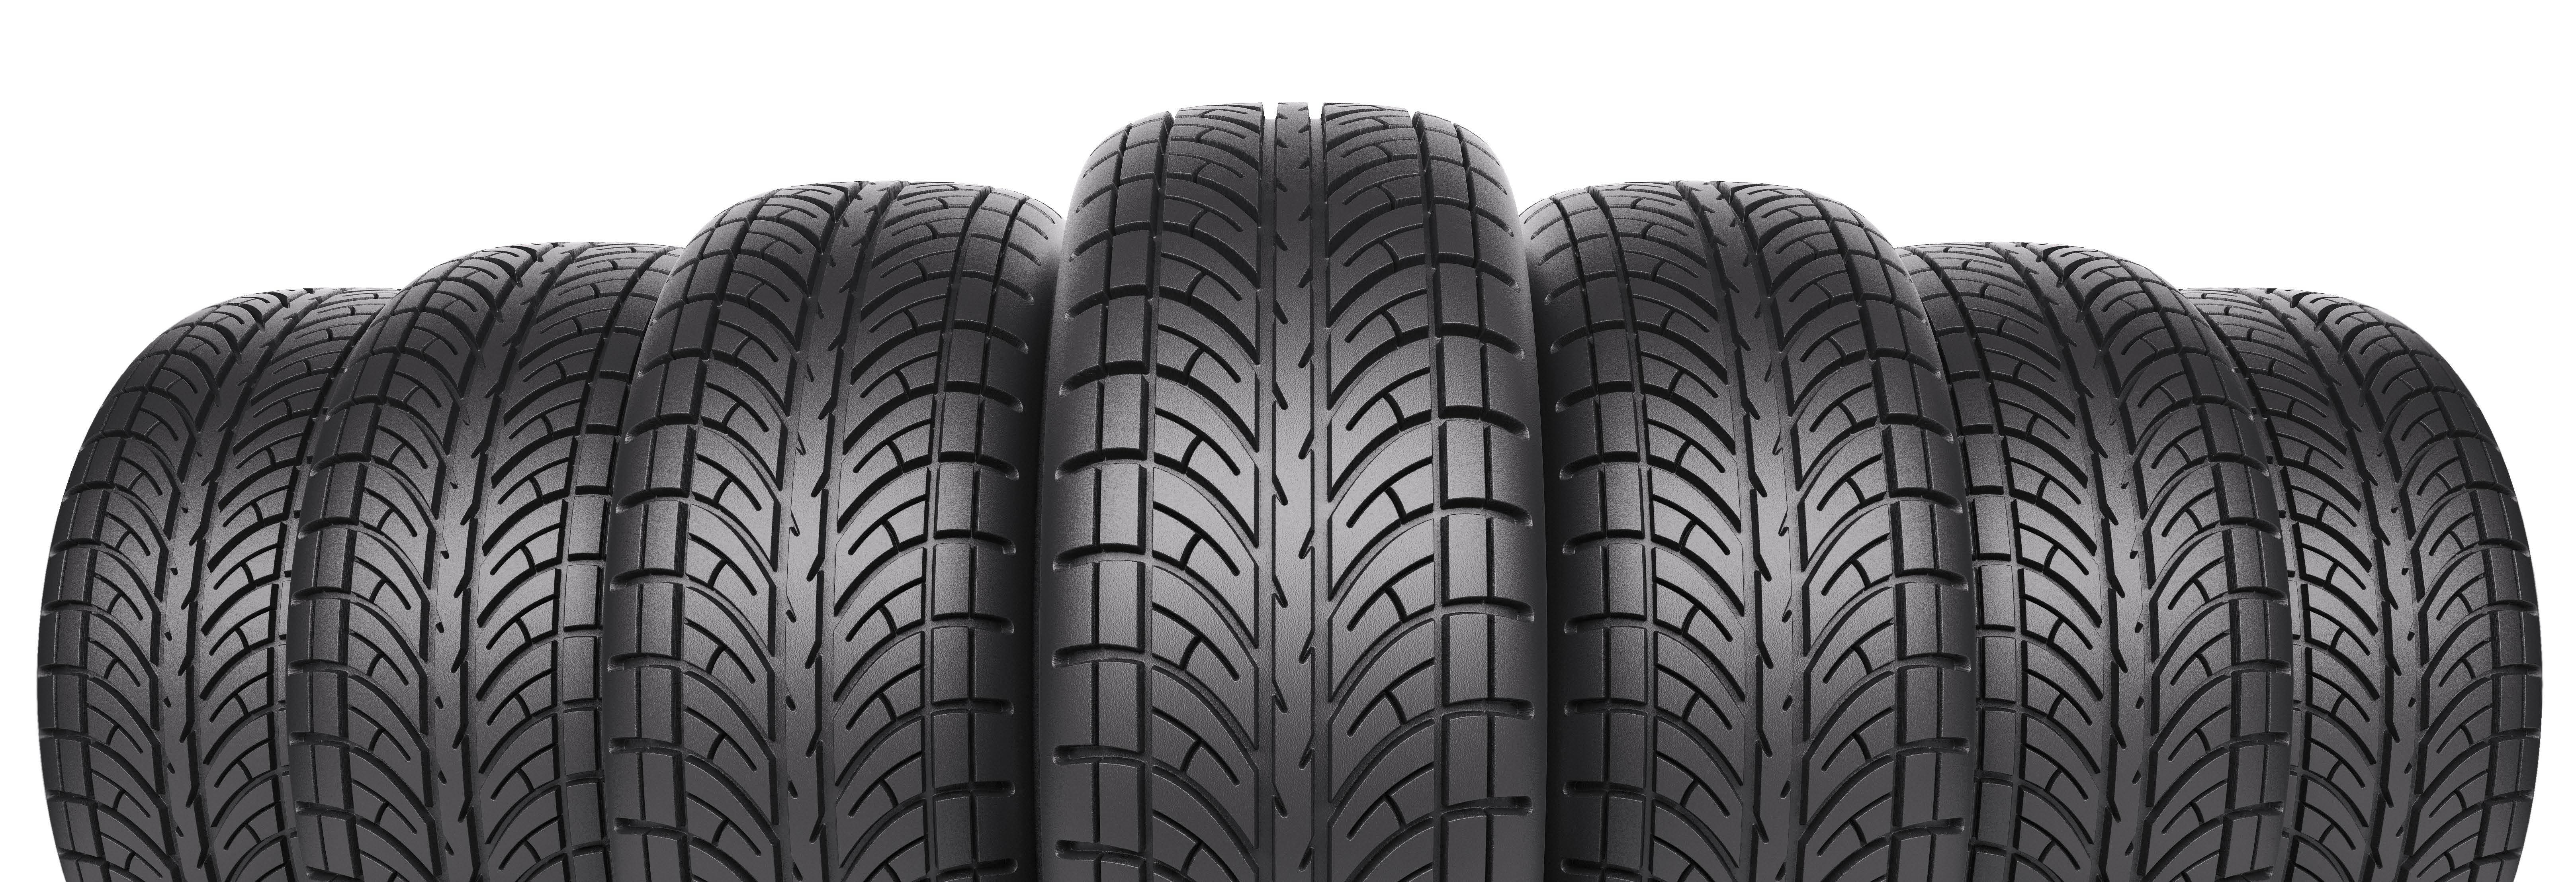 Buy Tires Patterson Ny Best Tire Shop Patterson Ny